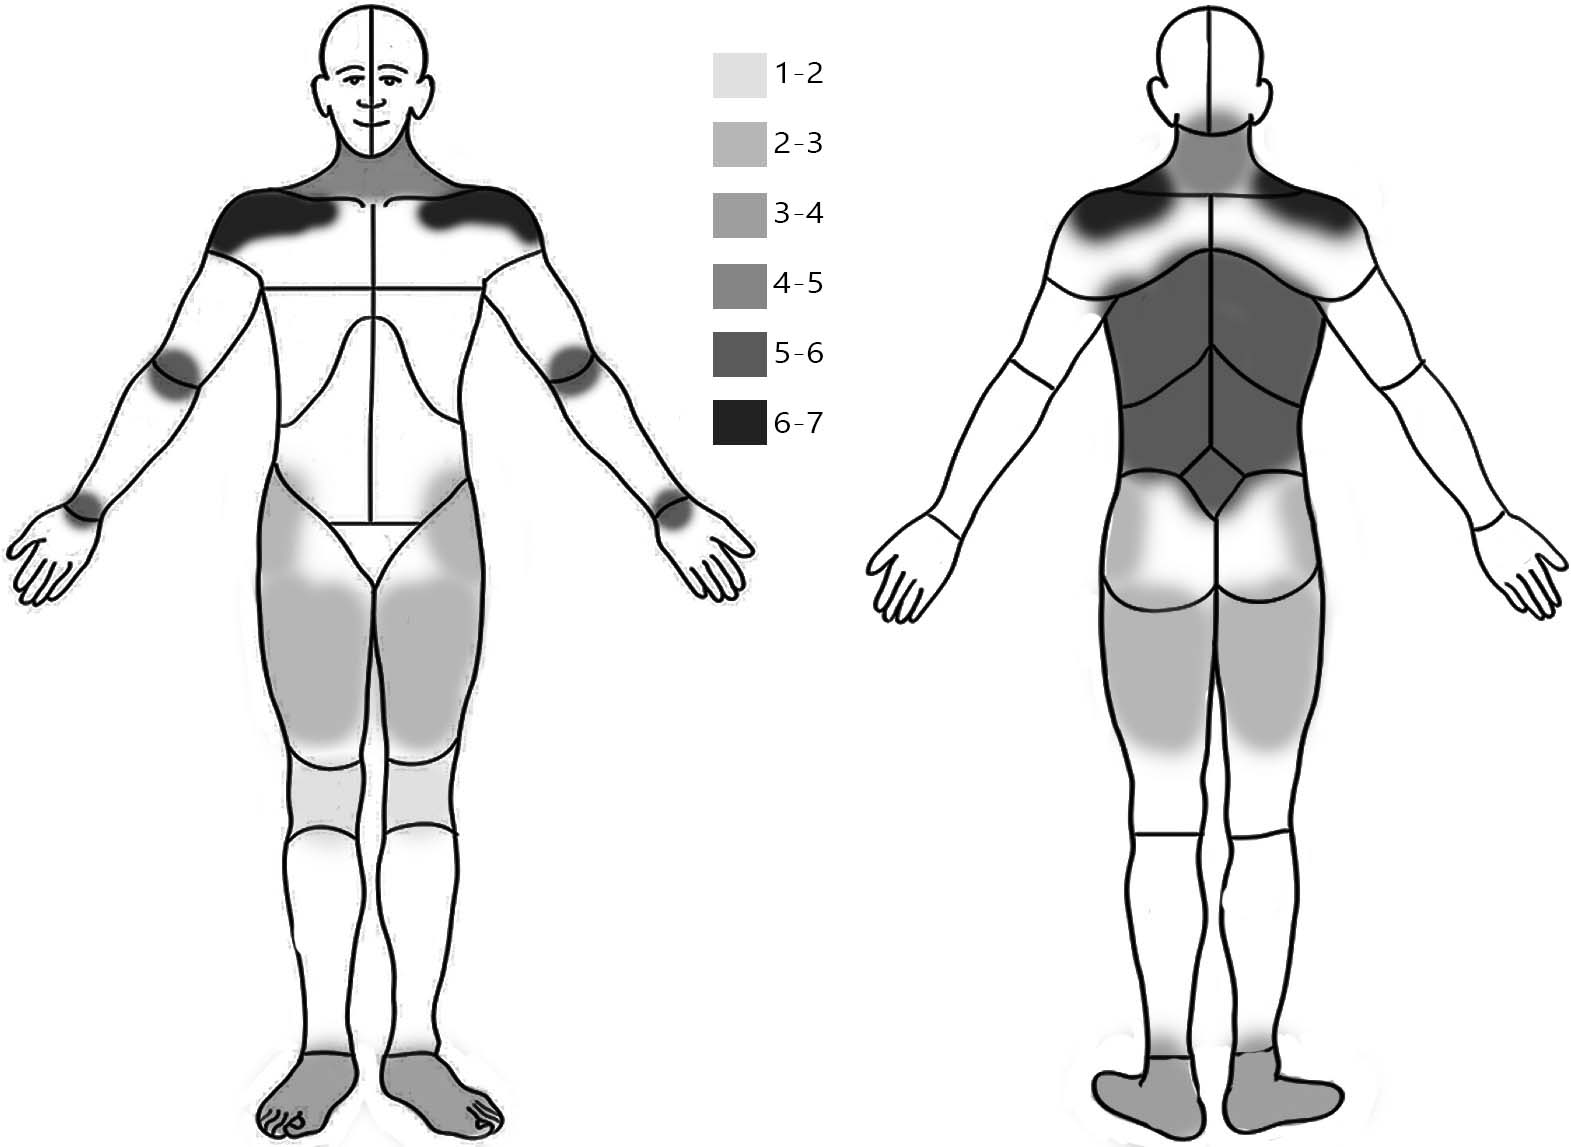 map of the body visualizing how bad pain is on a scale from 1-7